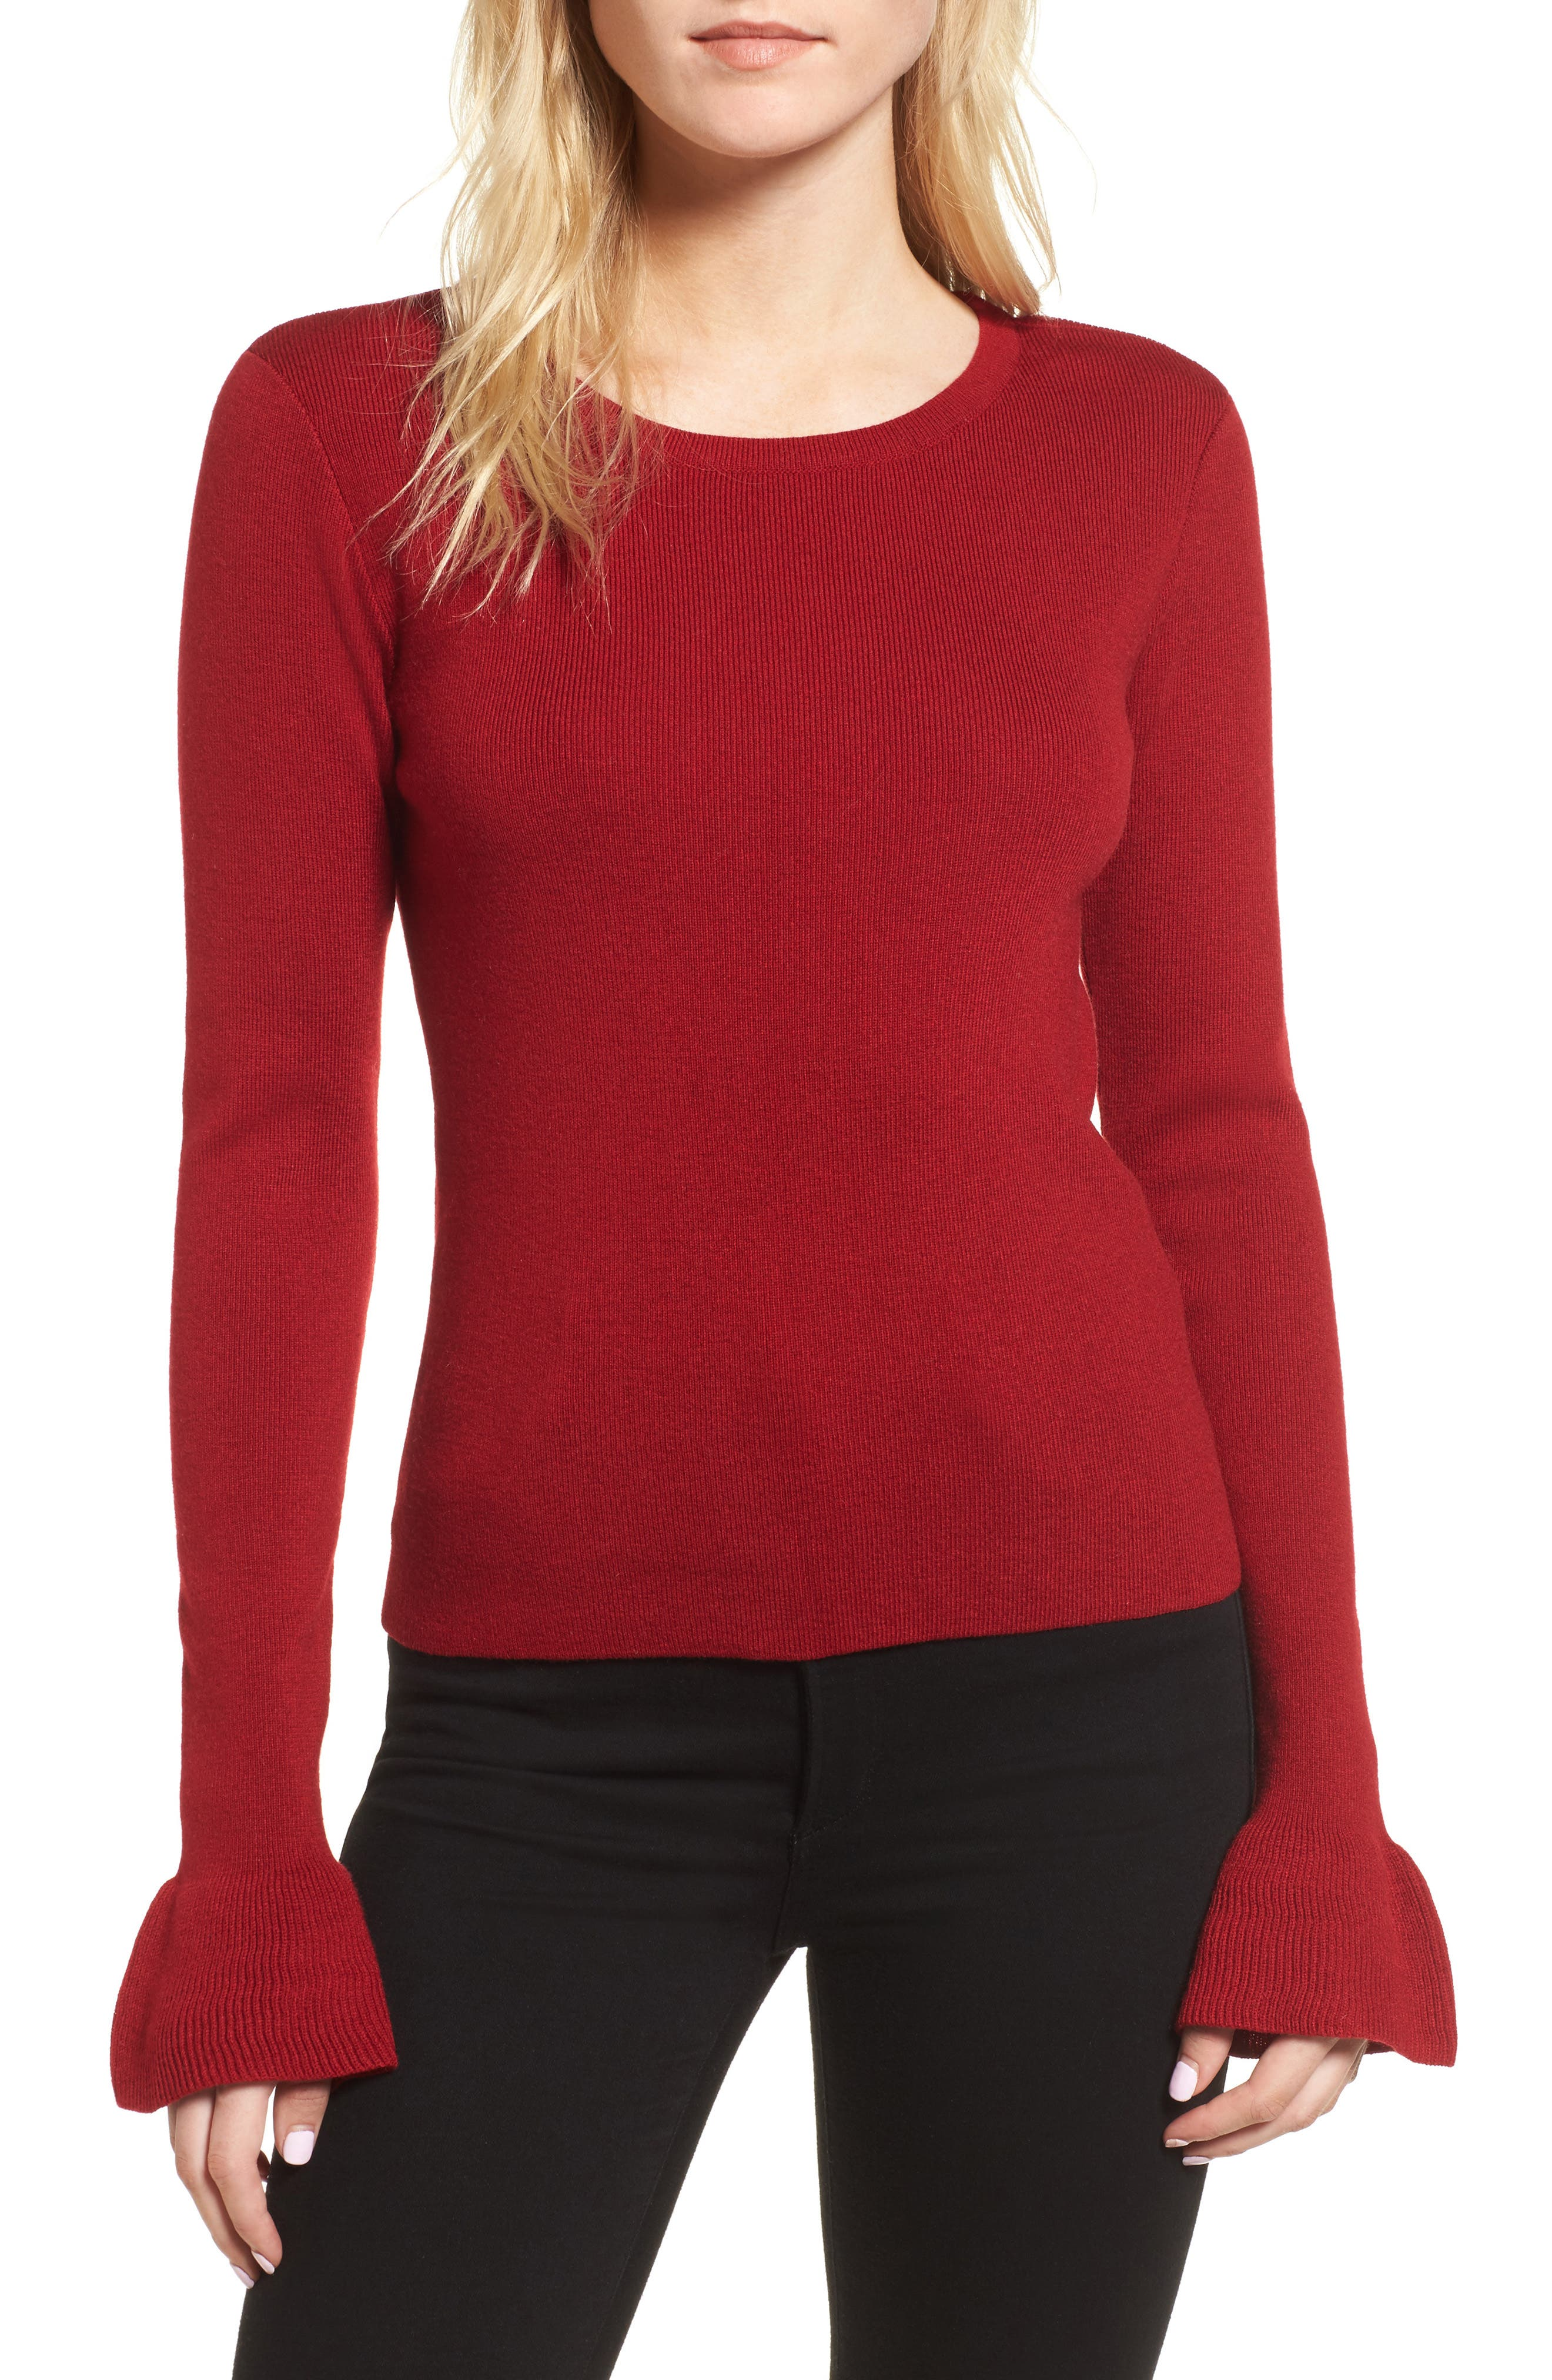 Alternate Image 1 Selected - cupcakes and cashmere Tina Ruffle Cuff Sweater